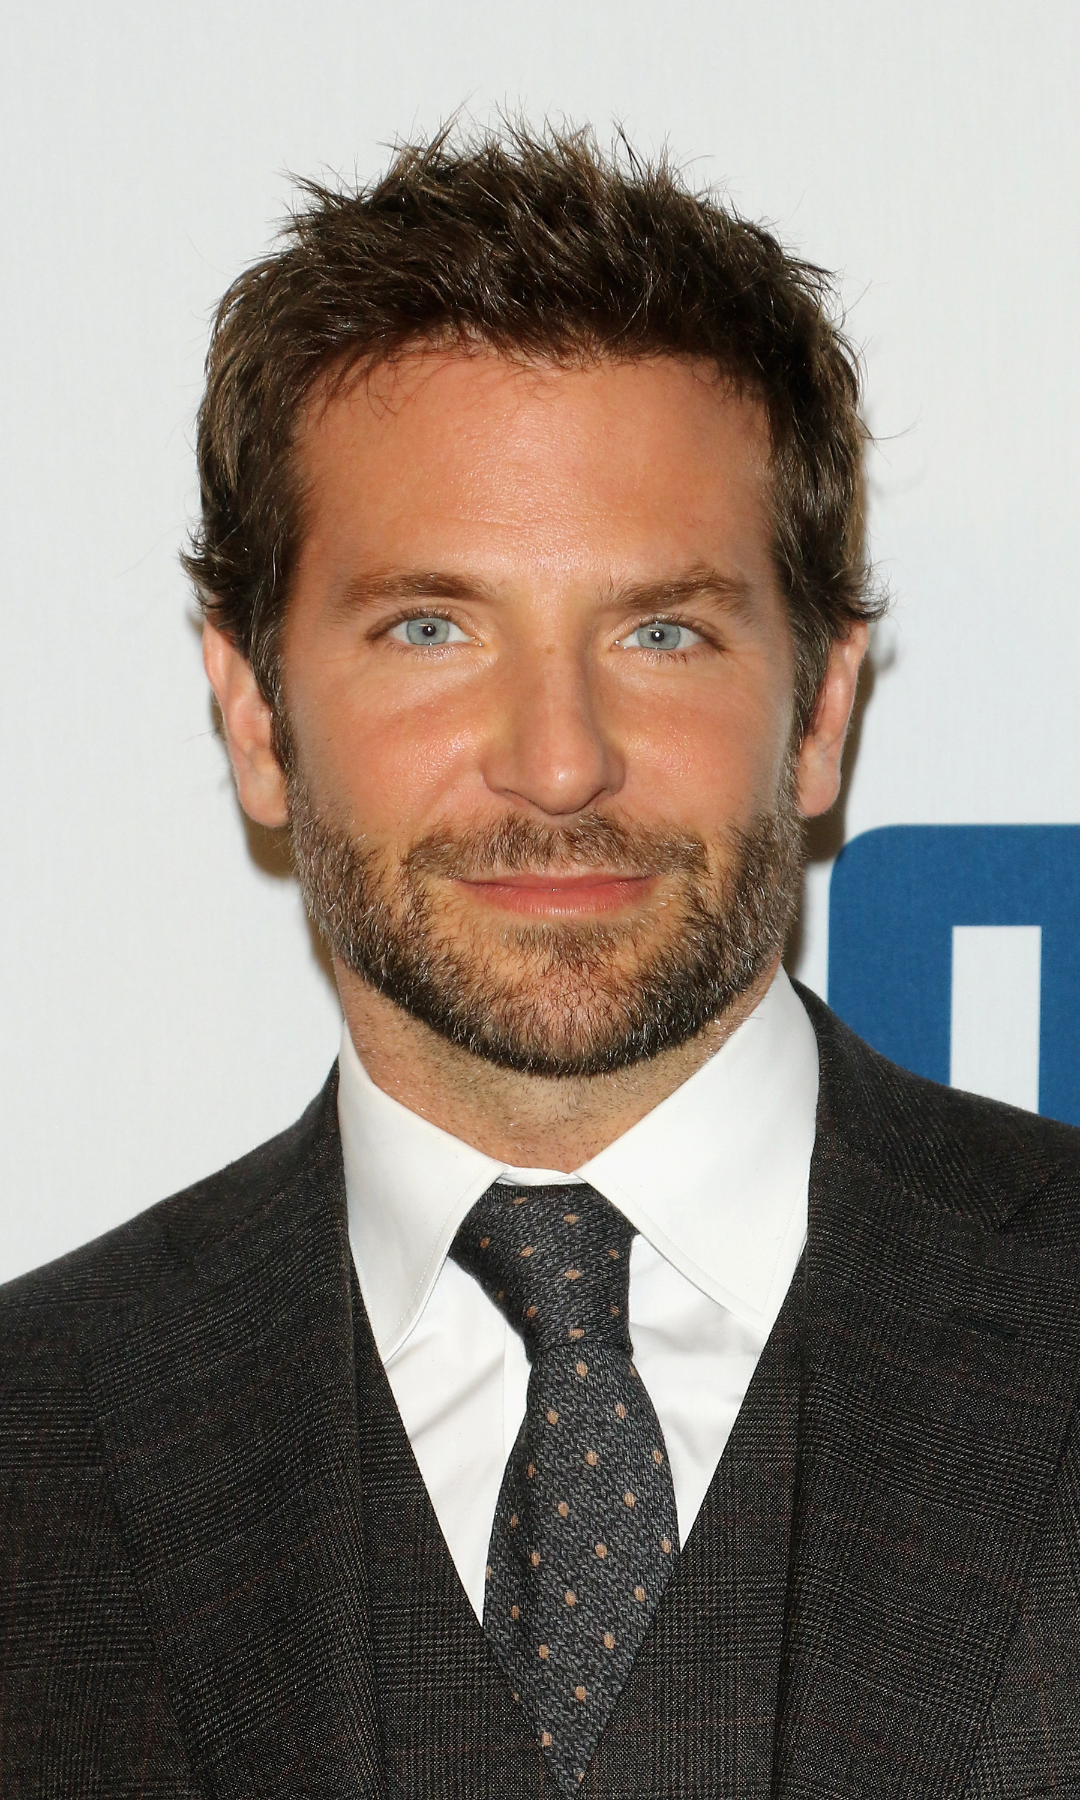 35 Pictures Of Bradley Cooper S Blue Eyes That Will Stop You In Your Tracks Bradley Cooper Hot Bradley Cooper Bradley Cooper Hangover